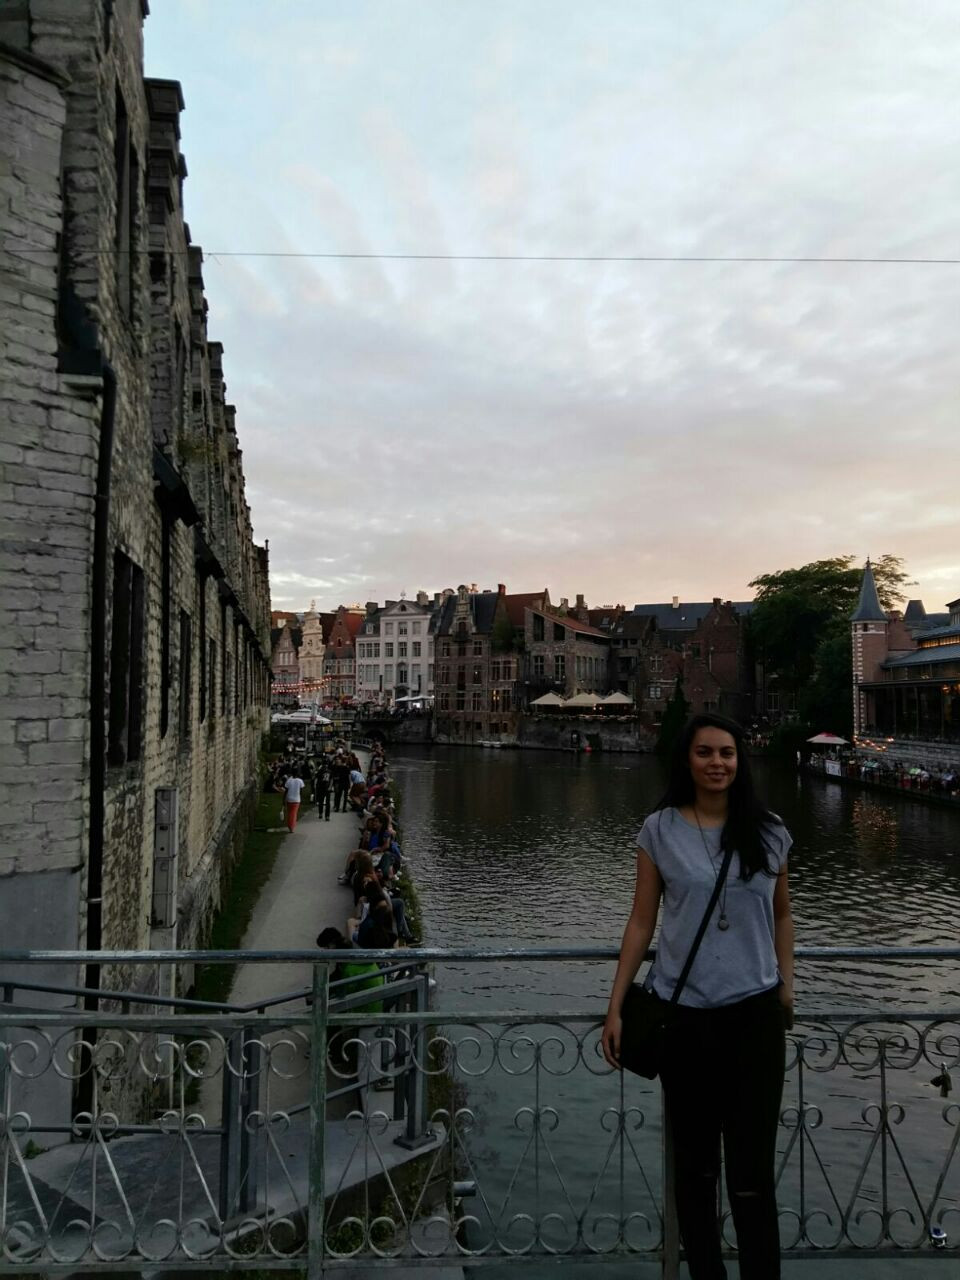 Carlynn exploring the city of Ghent